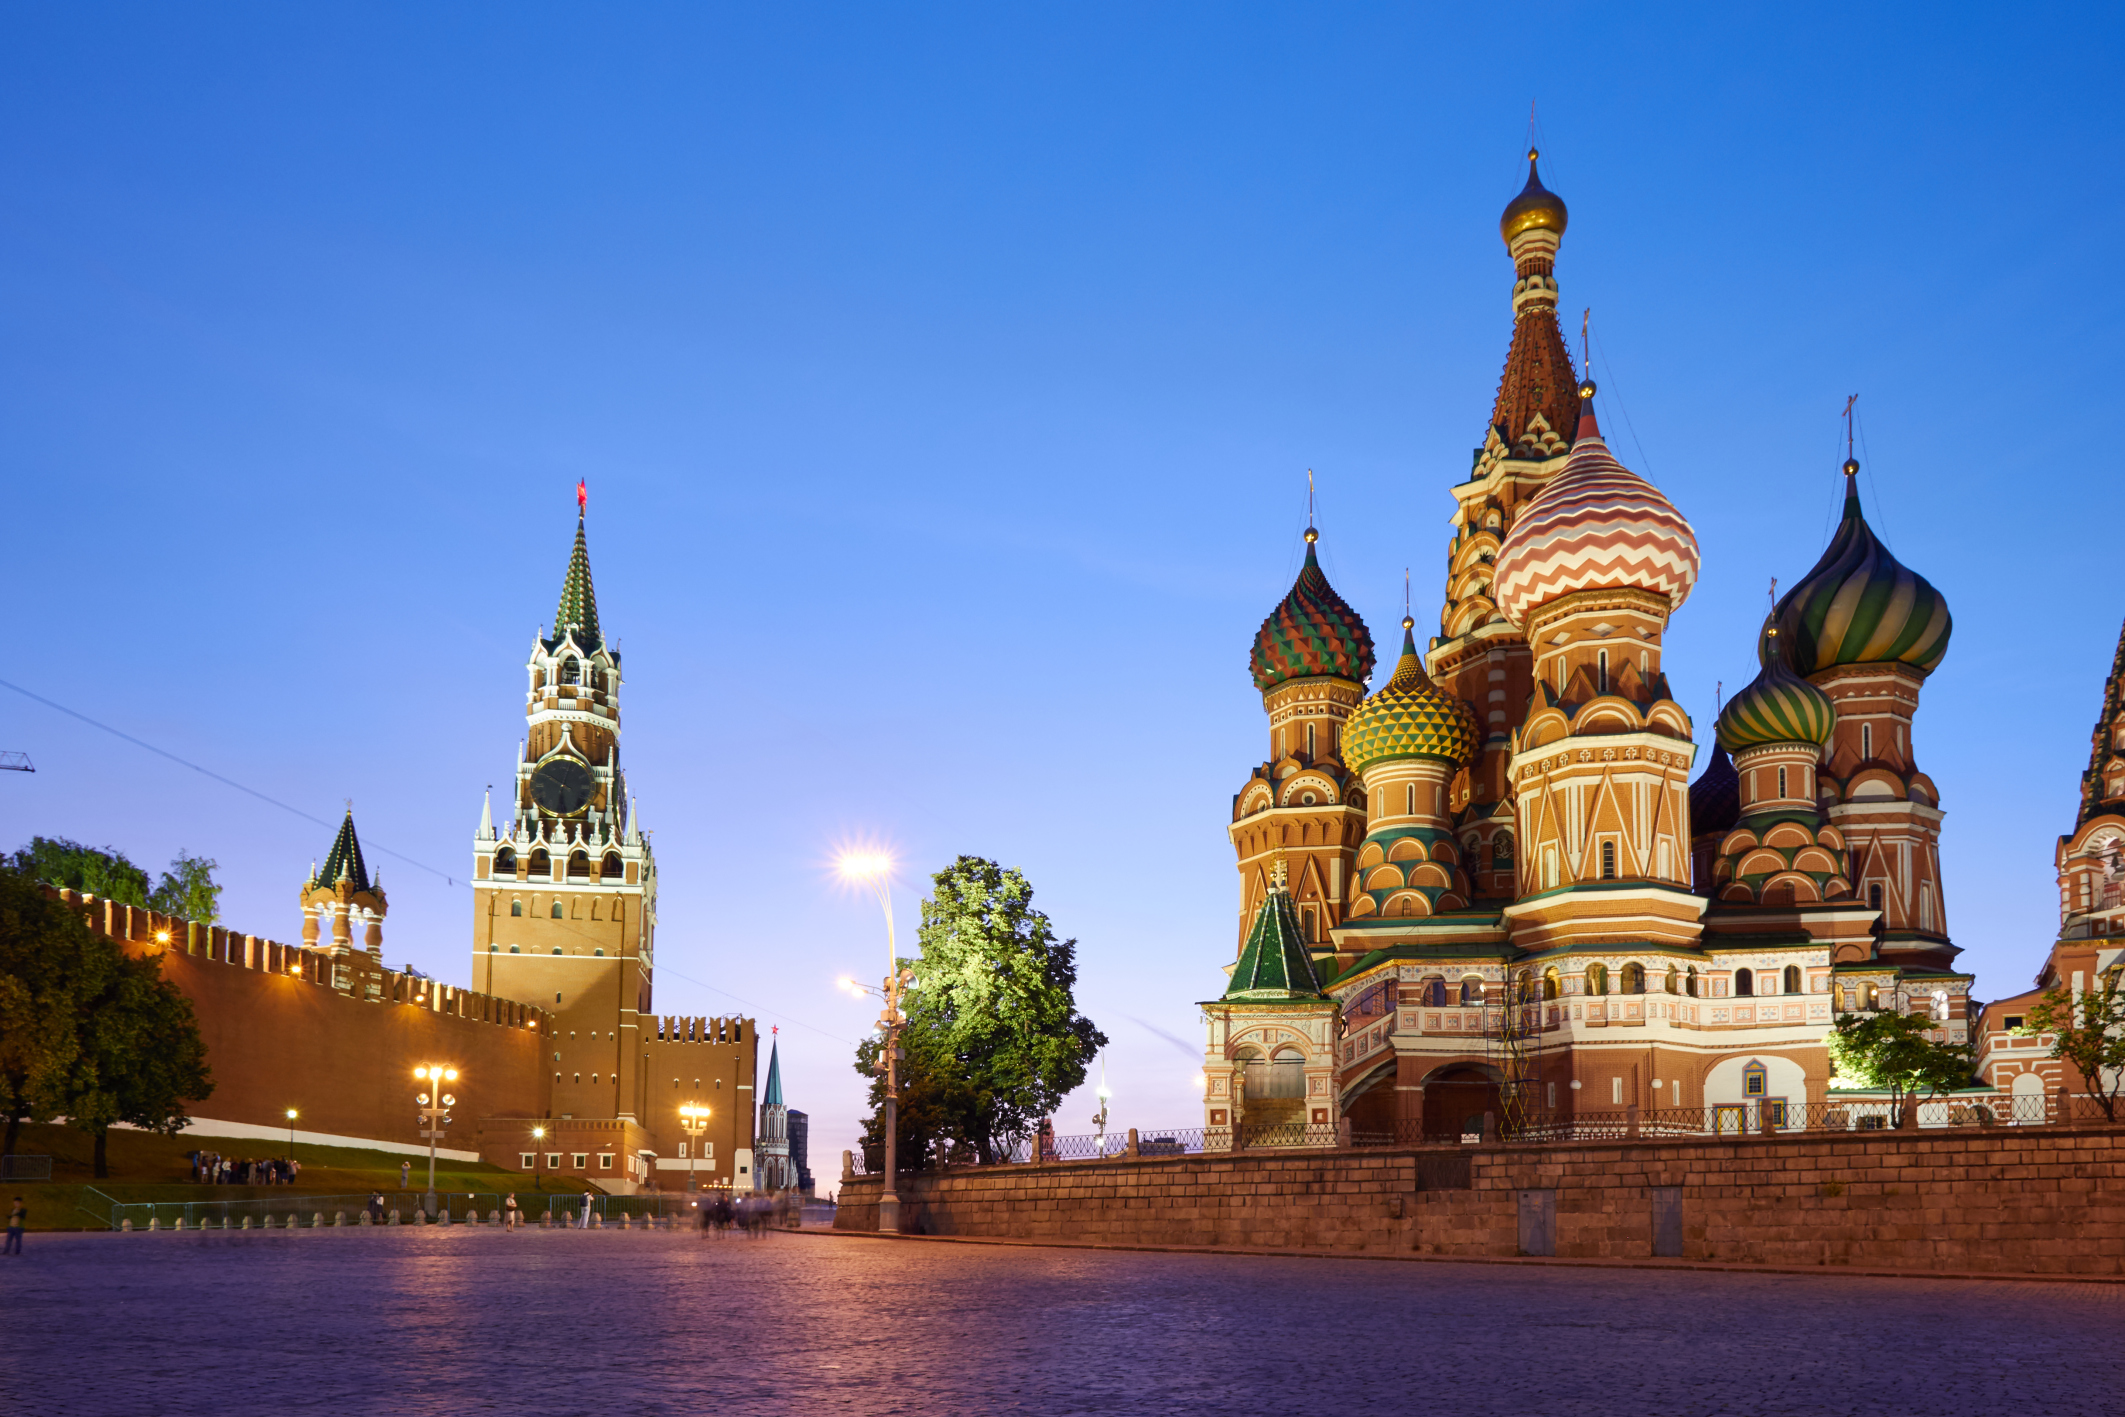 The buildings located on the Red Square: Kremlin wall (at left) and Saint Basil's Cathedral (at right), Moscow, Russia. UNESCO W